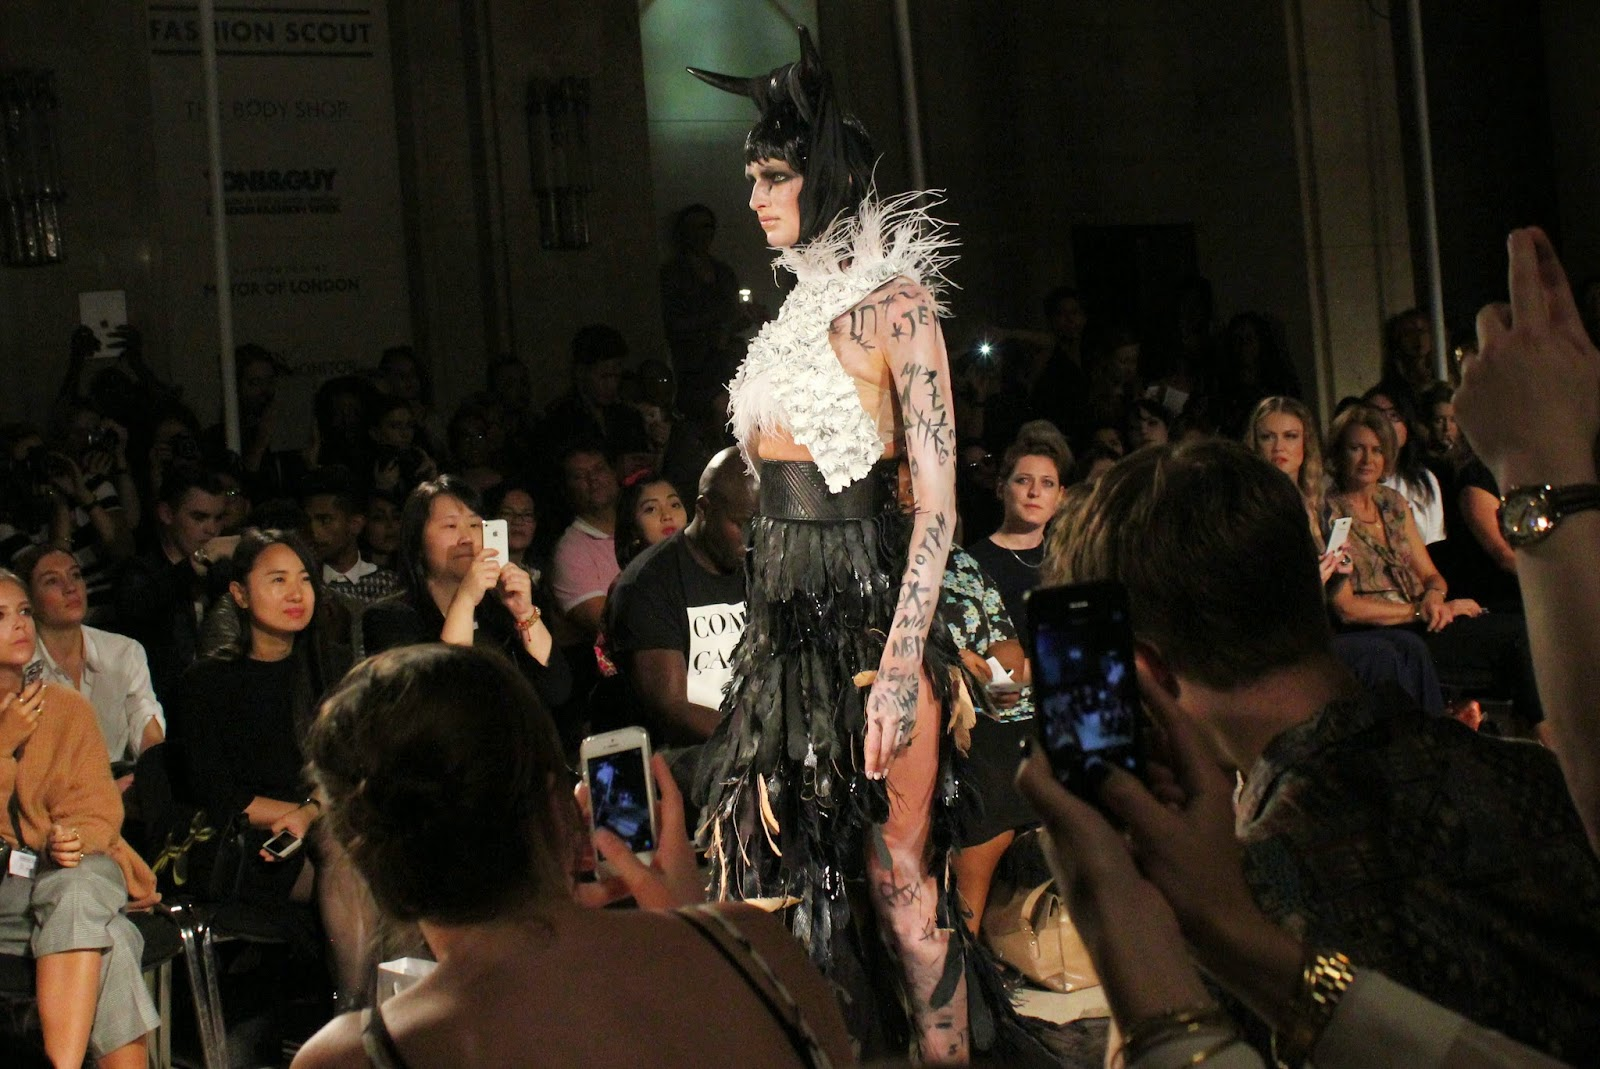 london-fashion-week-2014-lfw-spring-summer-2015-blogger-fashion-Dora-Abodi-catwalk-models-freemasons hall-fashion-scout-top-maxi-skirt-headdress-horns-body-art-feathers